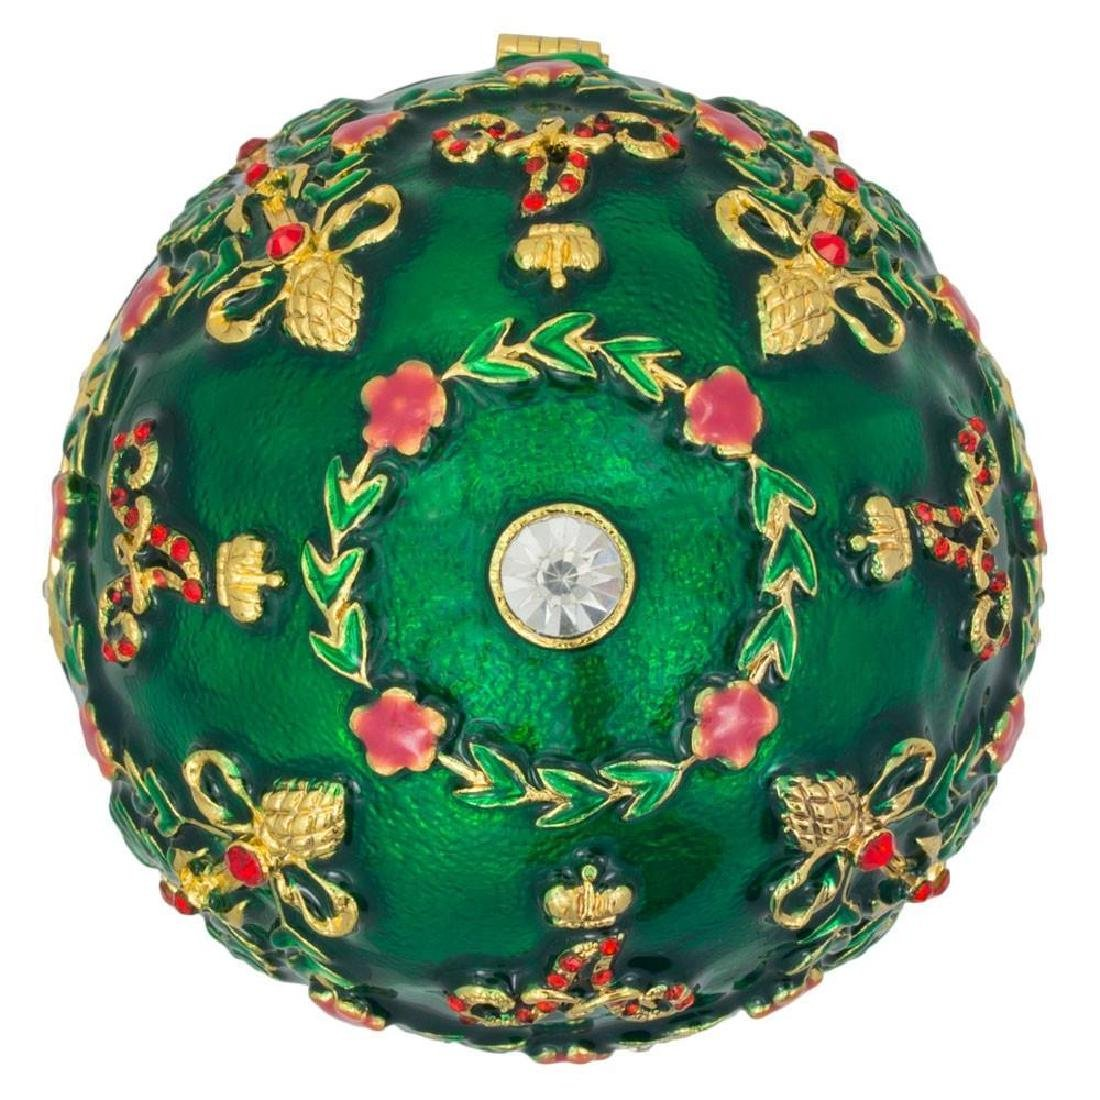 Faberge Inspired 1908 Alexander Palace Faberge Egg - 6